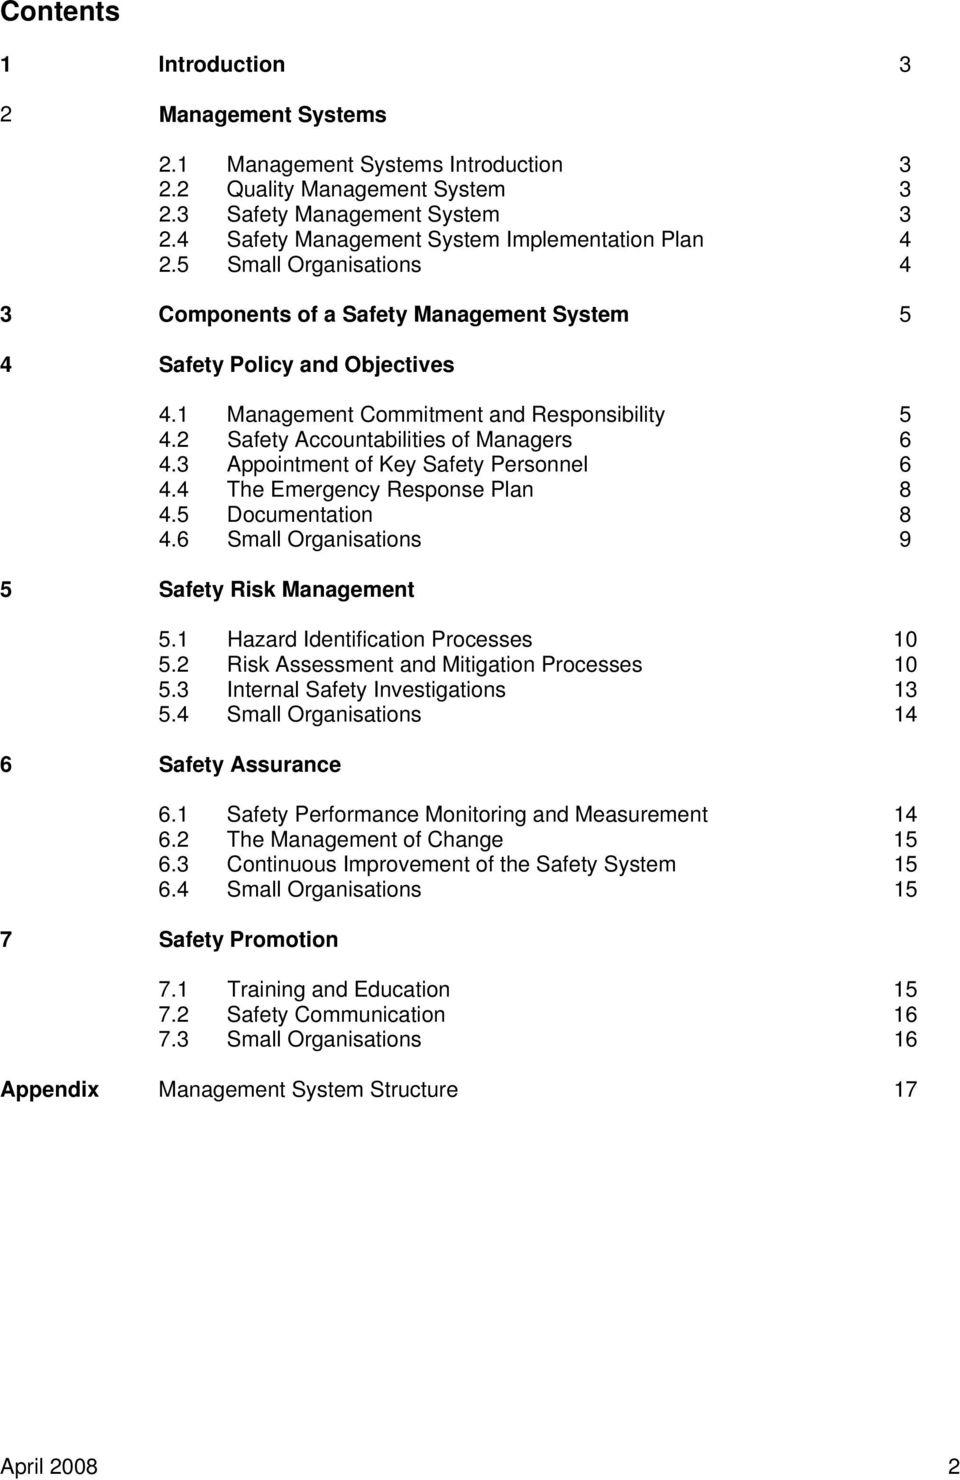 2 Safety Accountabilities of Managers 6 4.3 Appointment of Key Safety Personnel 6 4.4 The Emergency Response Plan 8 4.5 Documentation 8 4.6 Small Organisations 9 5 Safety Risk Management 5.